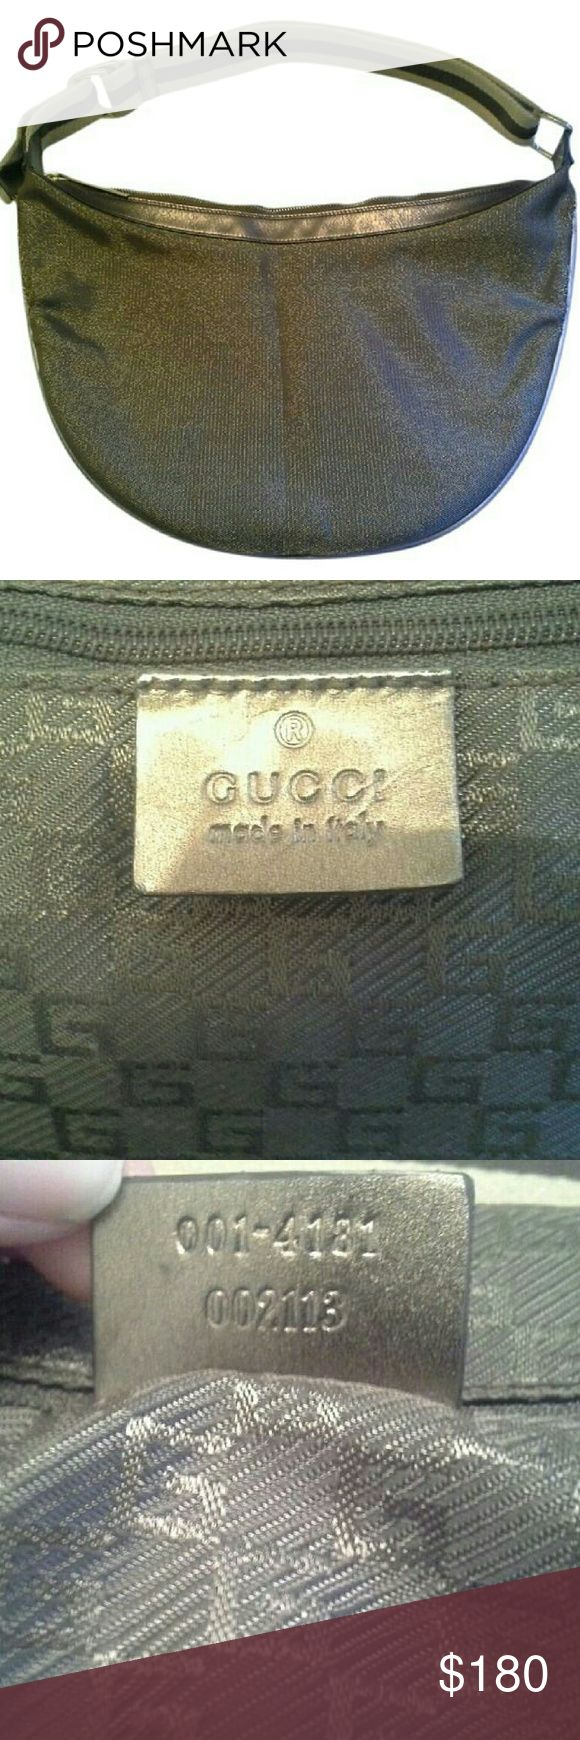 """Gucci Authentic Handbag Metallic Bronze Hobo Rare 100% Authentic Gucci handbag! Beautiful bronze and metallic brown fabric hobo with leather trim. Striped leather trimmed fabric strap has a light shimmer to it to match. Gorgeous gold logo hardware. Signature logo print lining.  H: 10"""" L: 14"""" Made in Italy. Includes Controllato card. Condition notes: Lovely looking bag with some repairable wear. Top layer of fabric along the sides has fraying (no actual holes in bag), could be repaired by a…"""